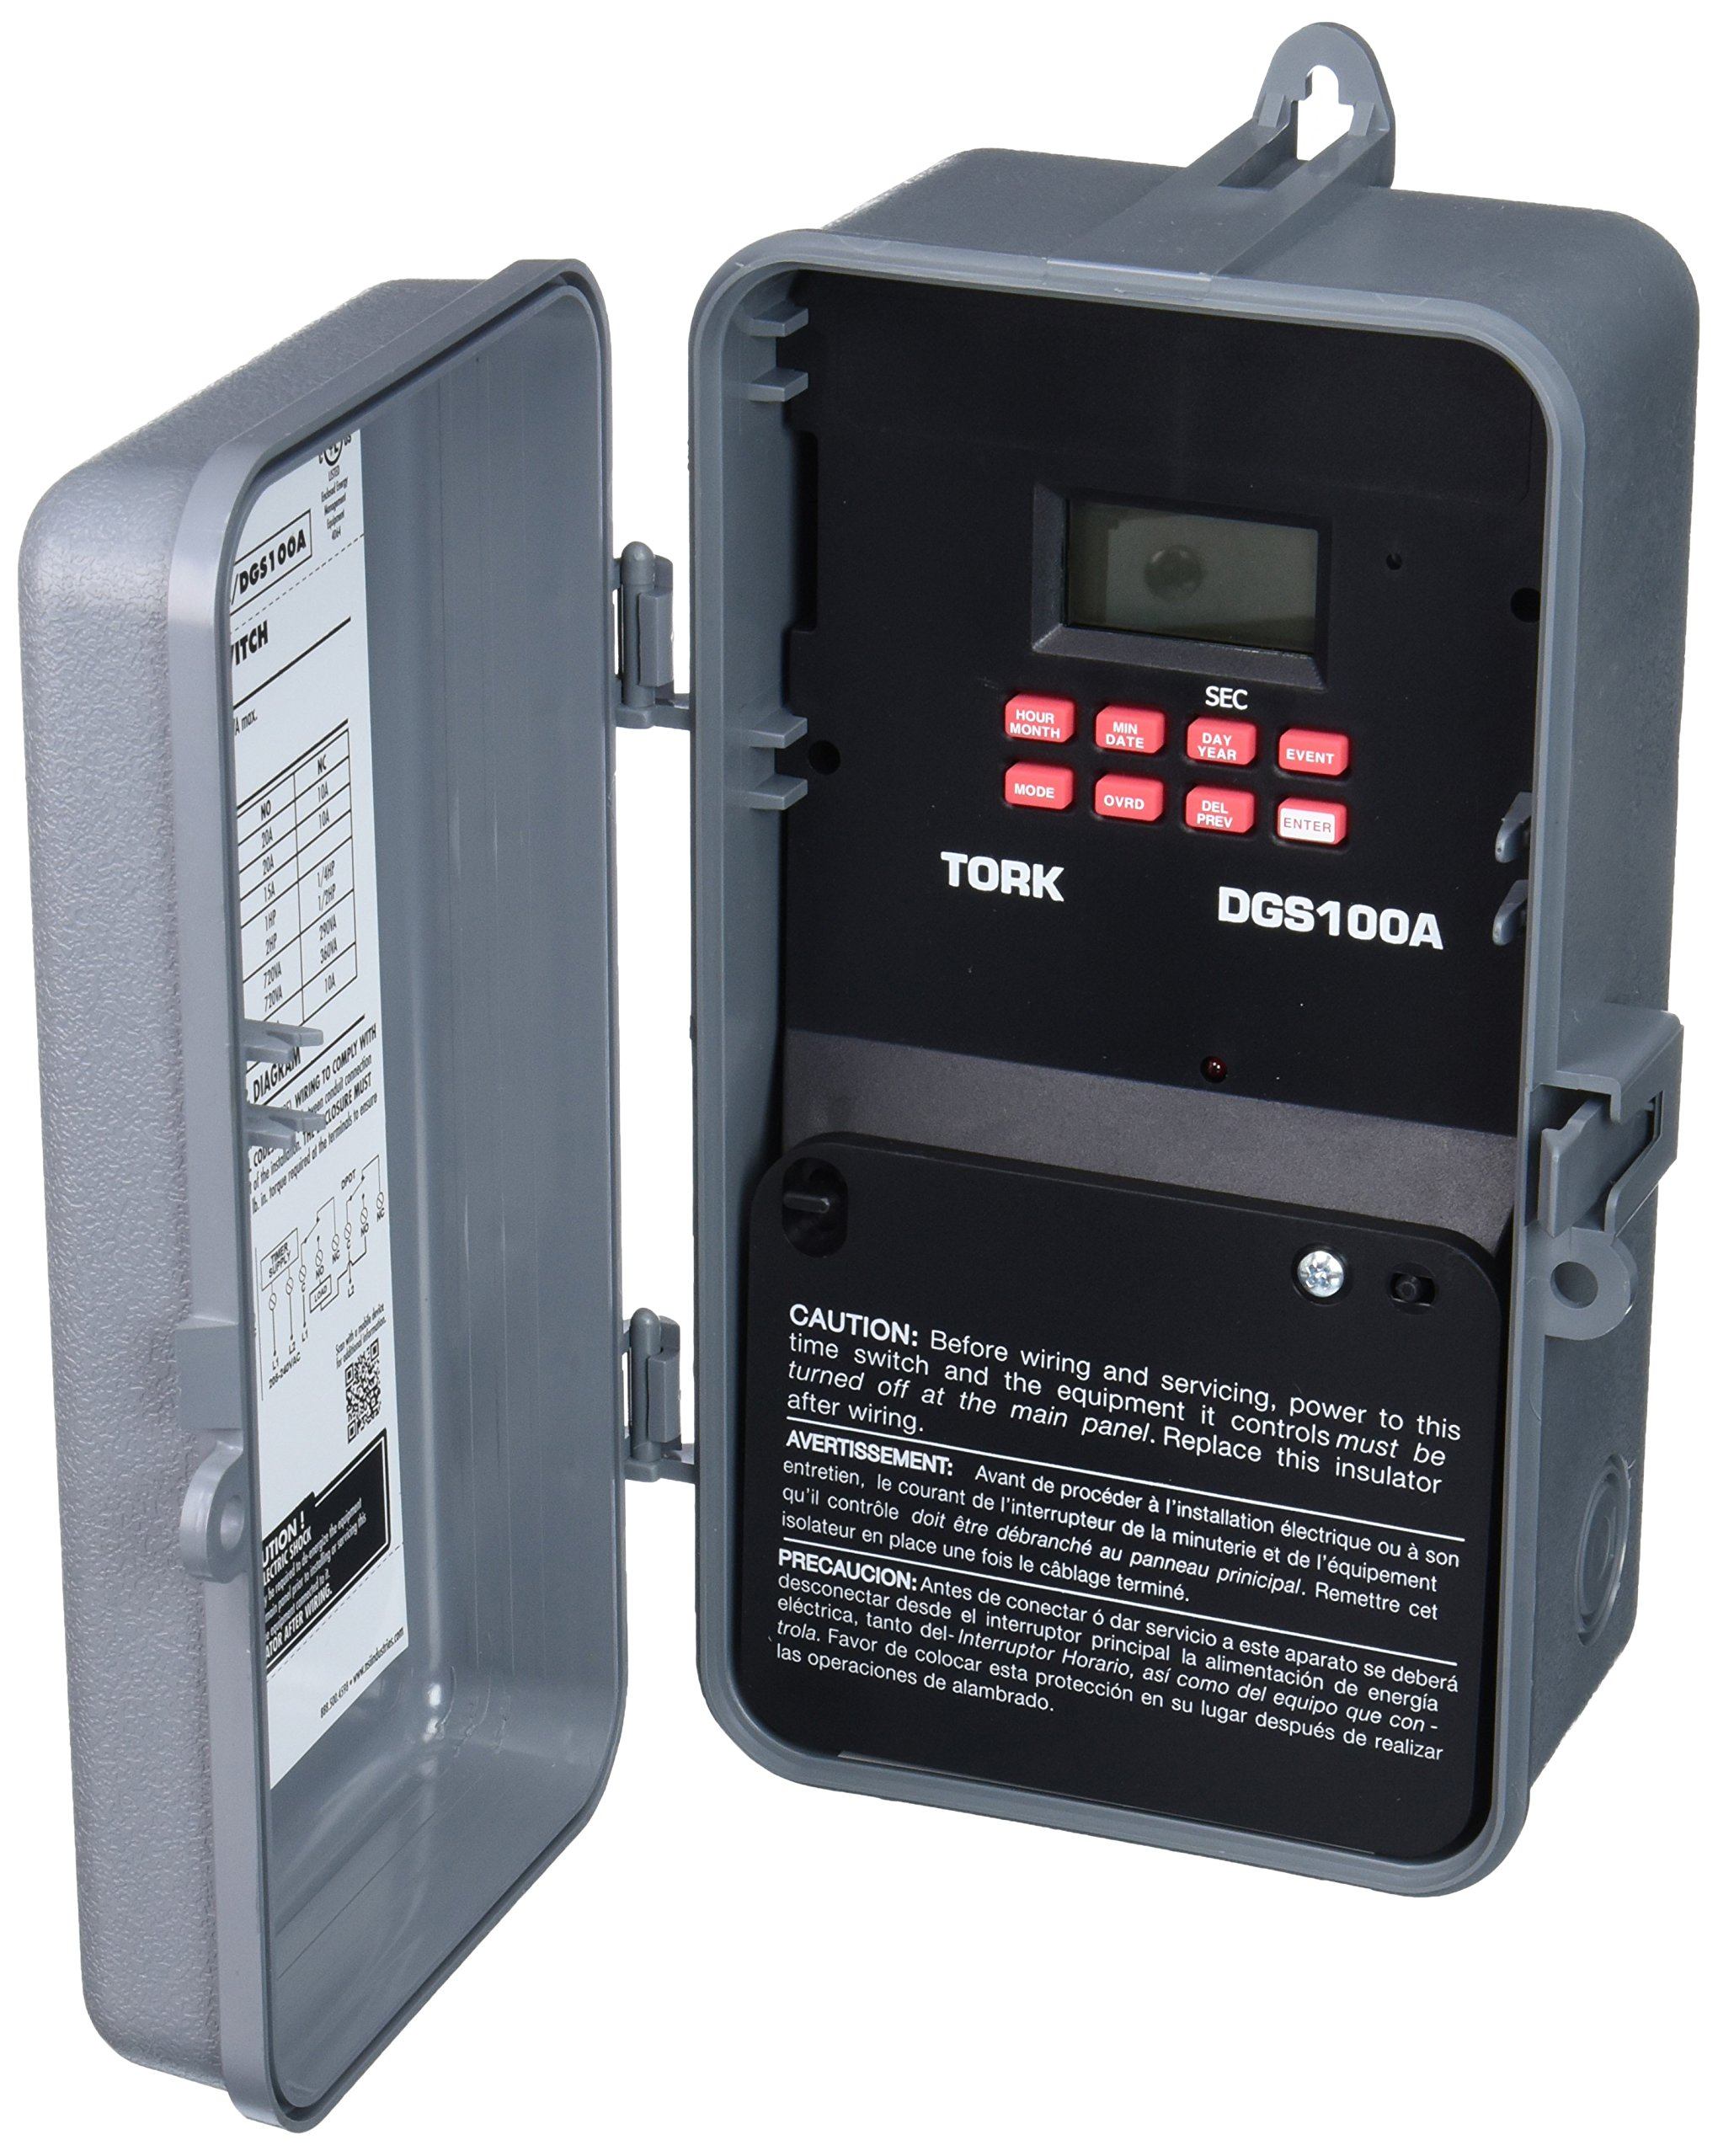 DGS Series Signaling and Duty Cycle 7 Day Time Switch with 1 Channel, 120-277 VAC 50/60 Hz Input Supply, DPDT Output Contact